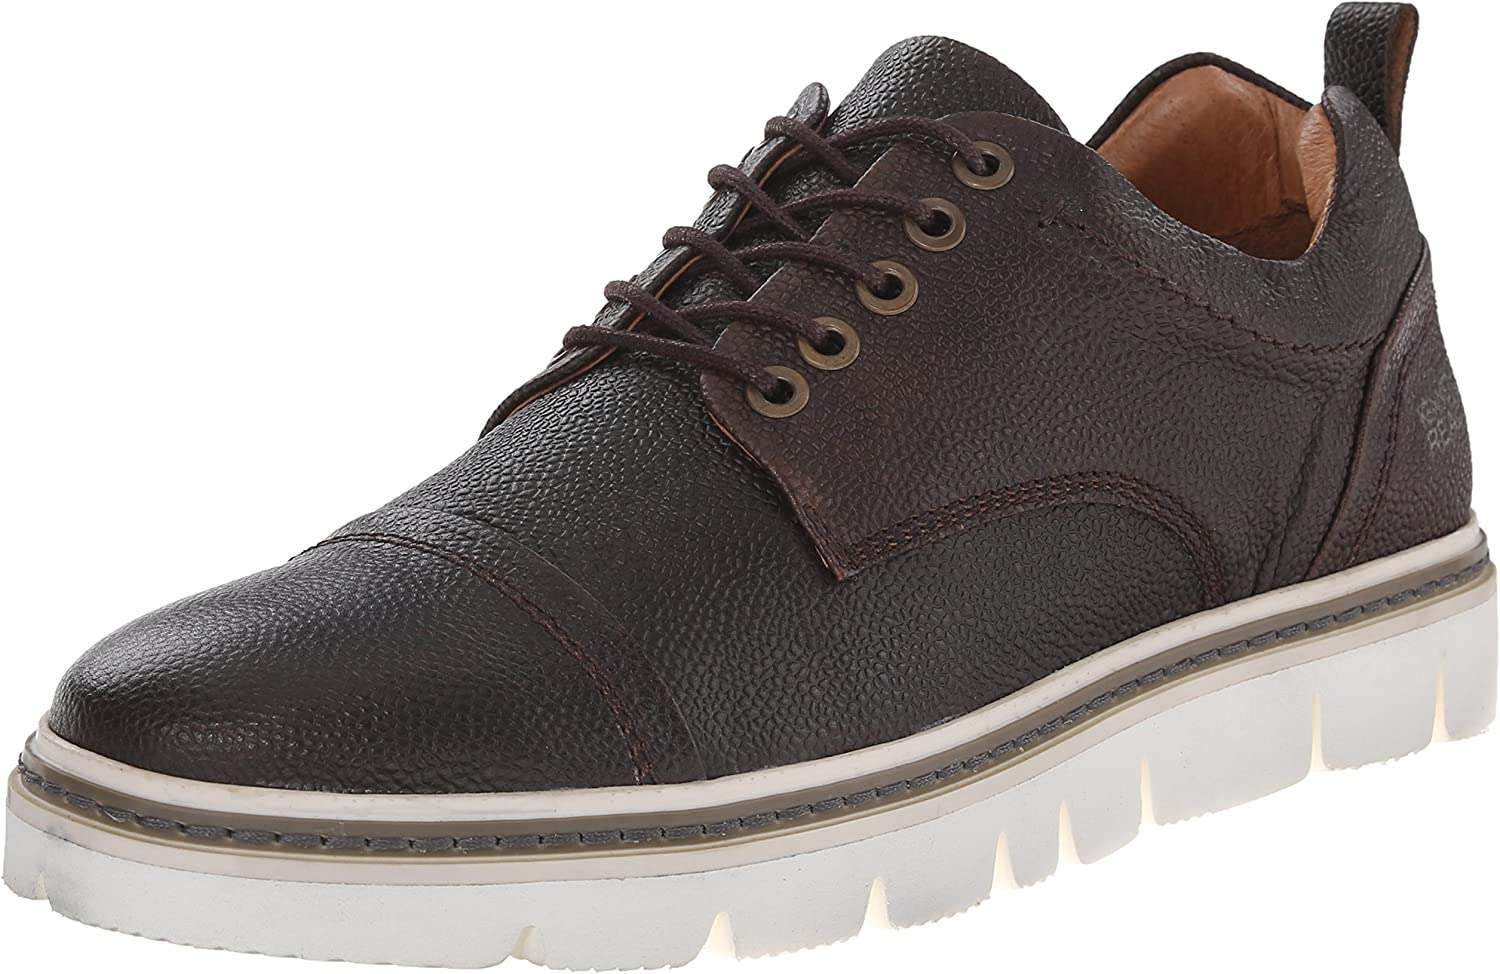 Kenneth Cole REACTION Men's in A Flash Oxford